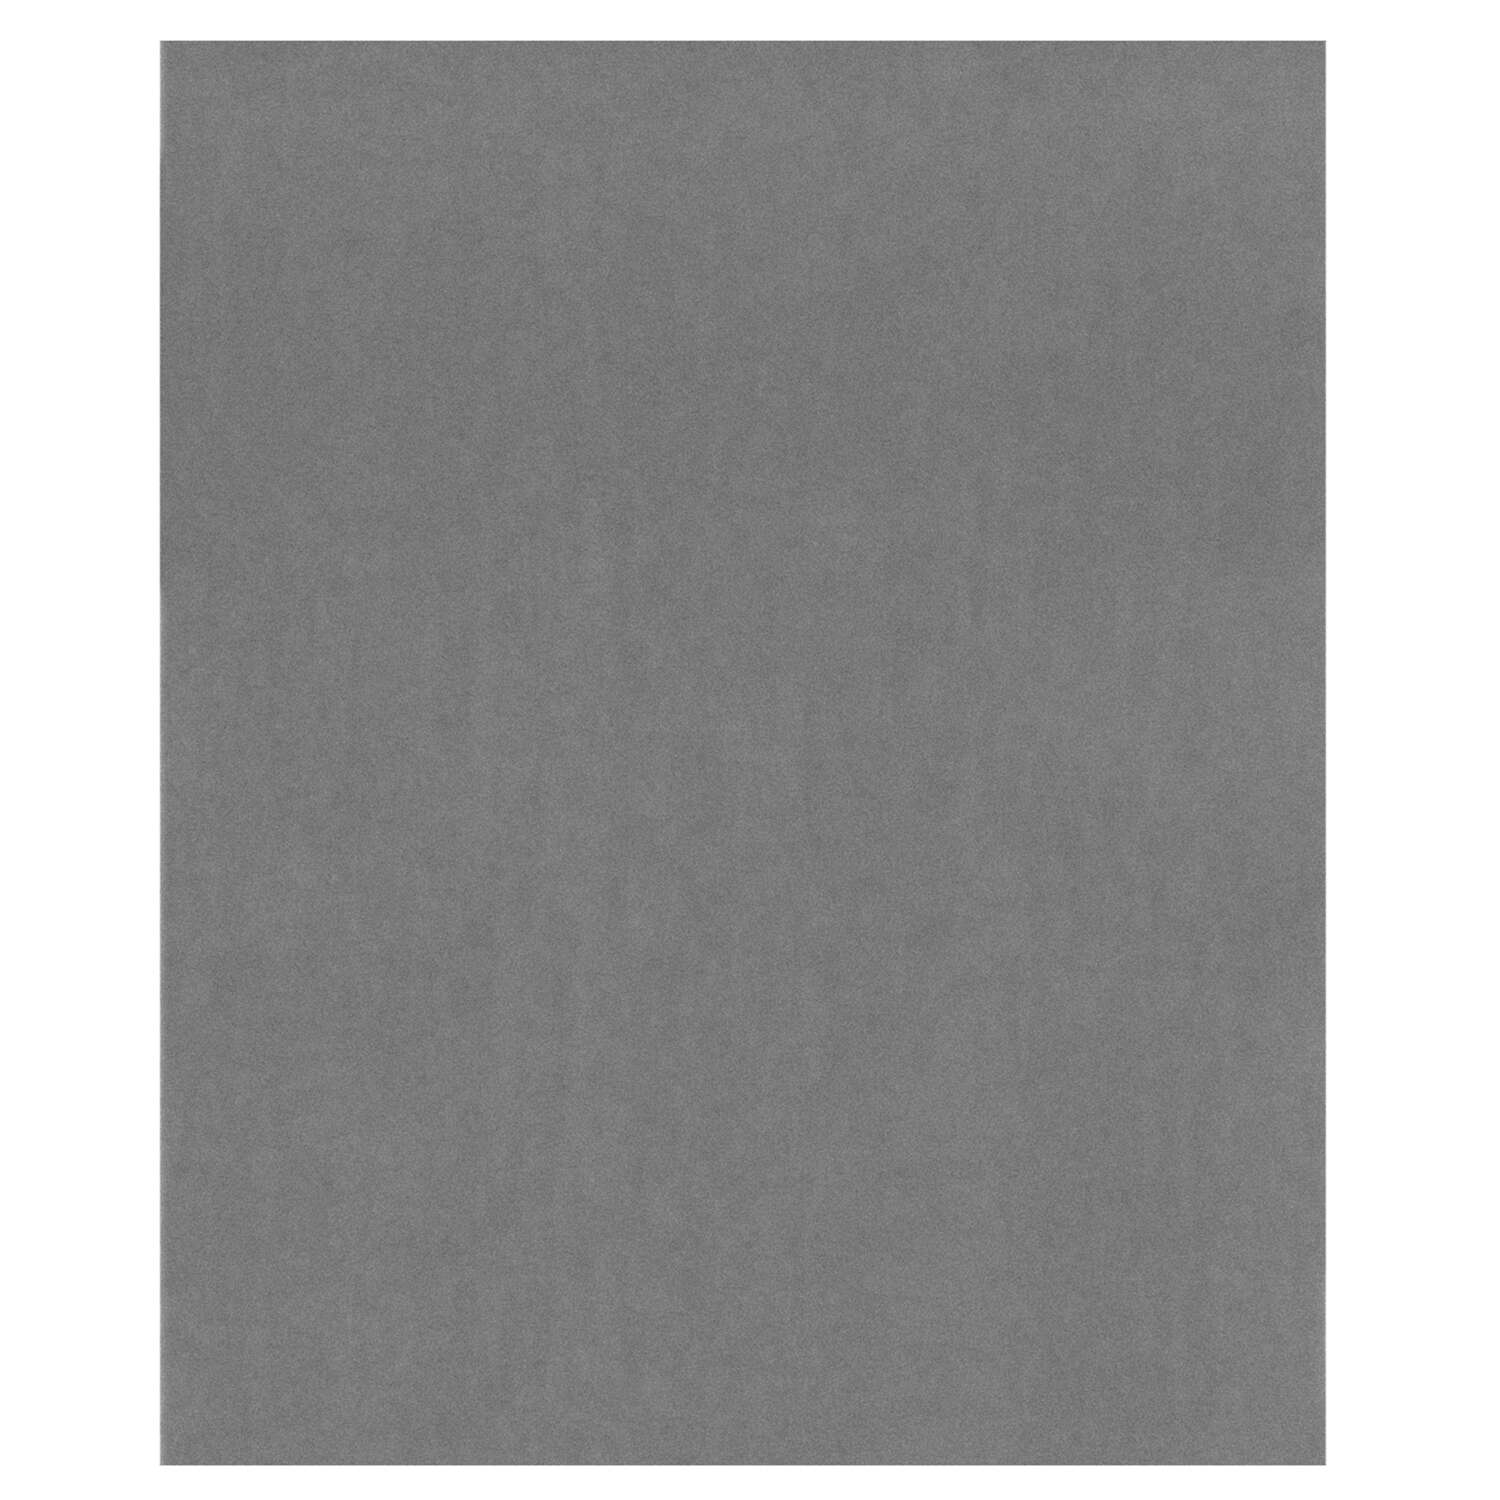 Gator  11 in. L x 9 in. W 600 Grit Silicon Carbide  Waterproof Sandpaper  1 pk